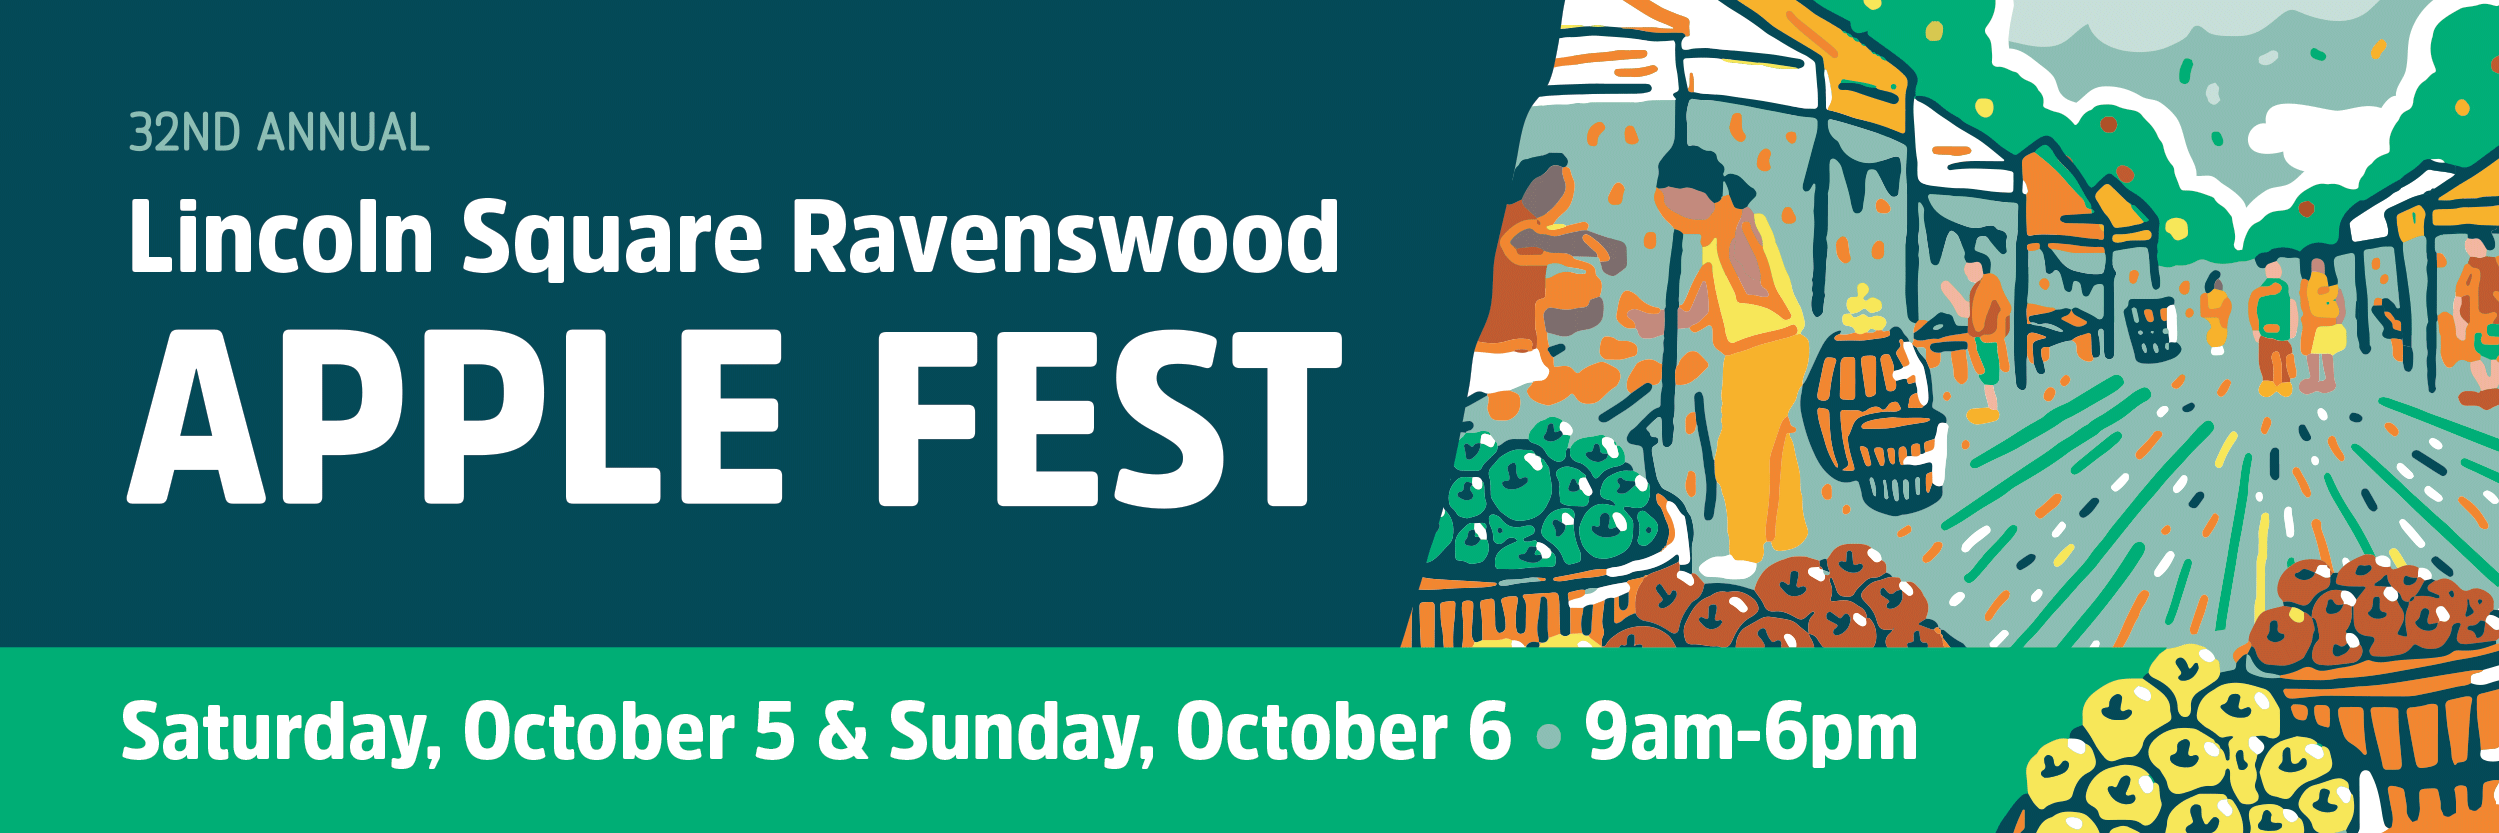 Apple Fest Lincoln Square Ravenswood